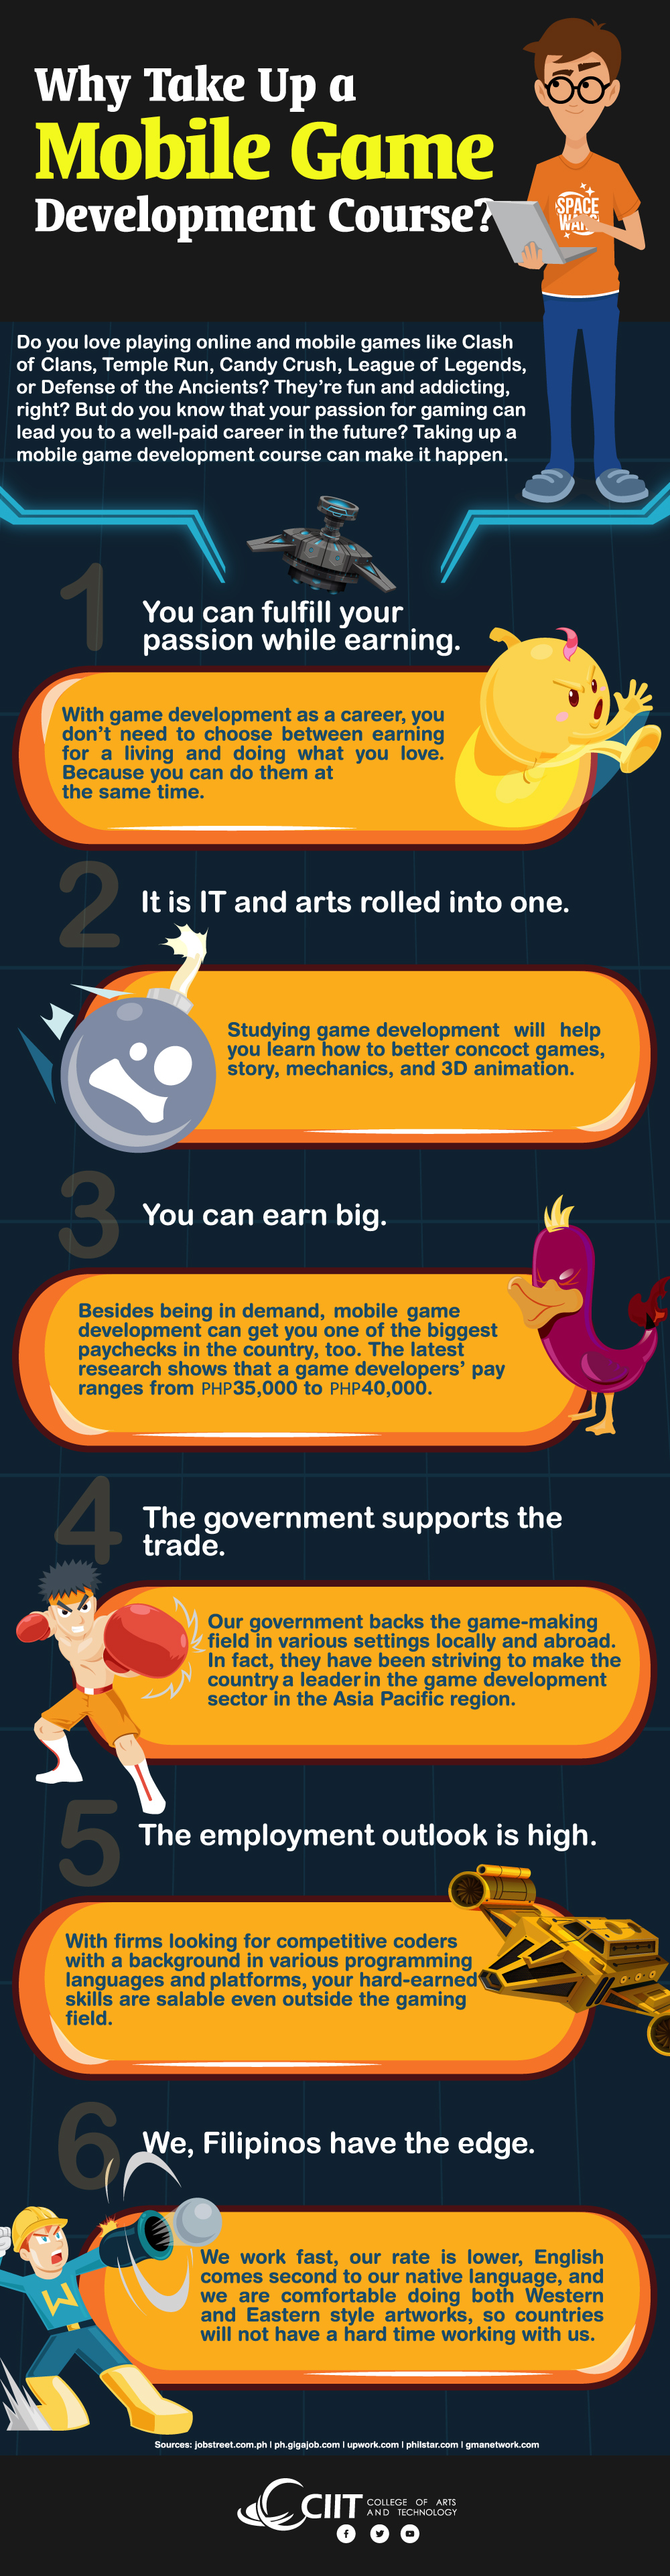 Why Take Up a Mobile Game Development Course -  Infographic